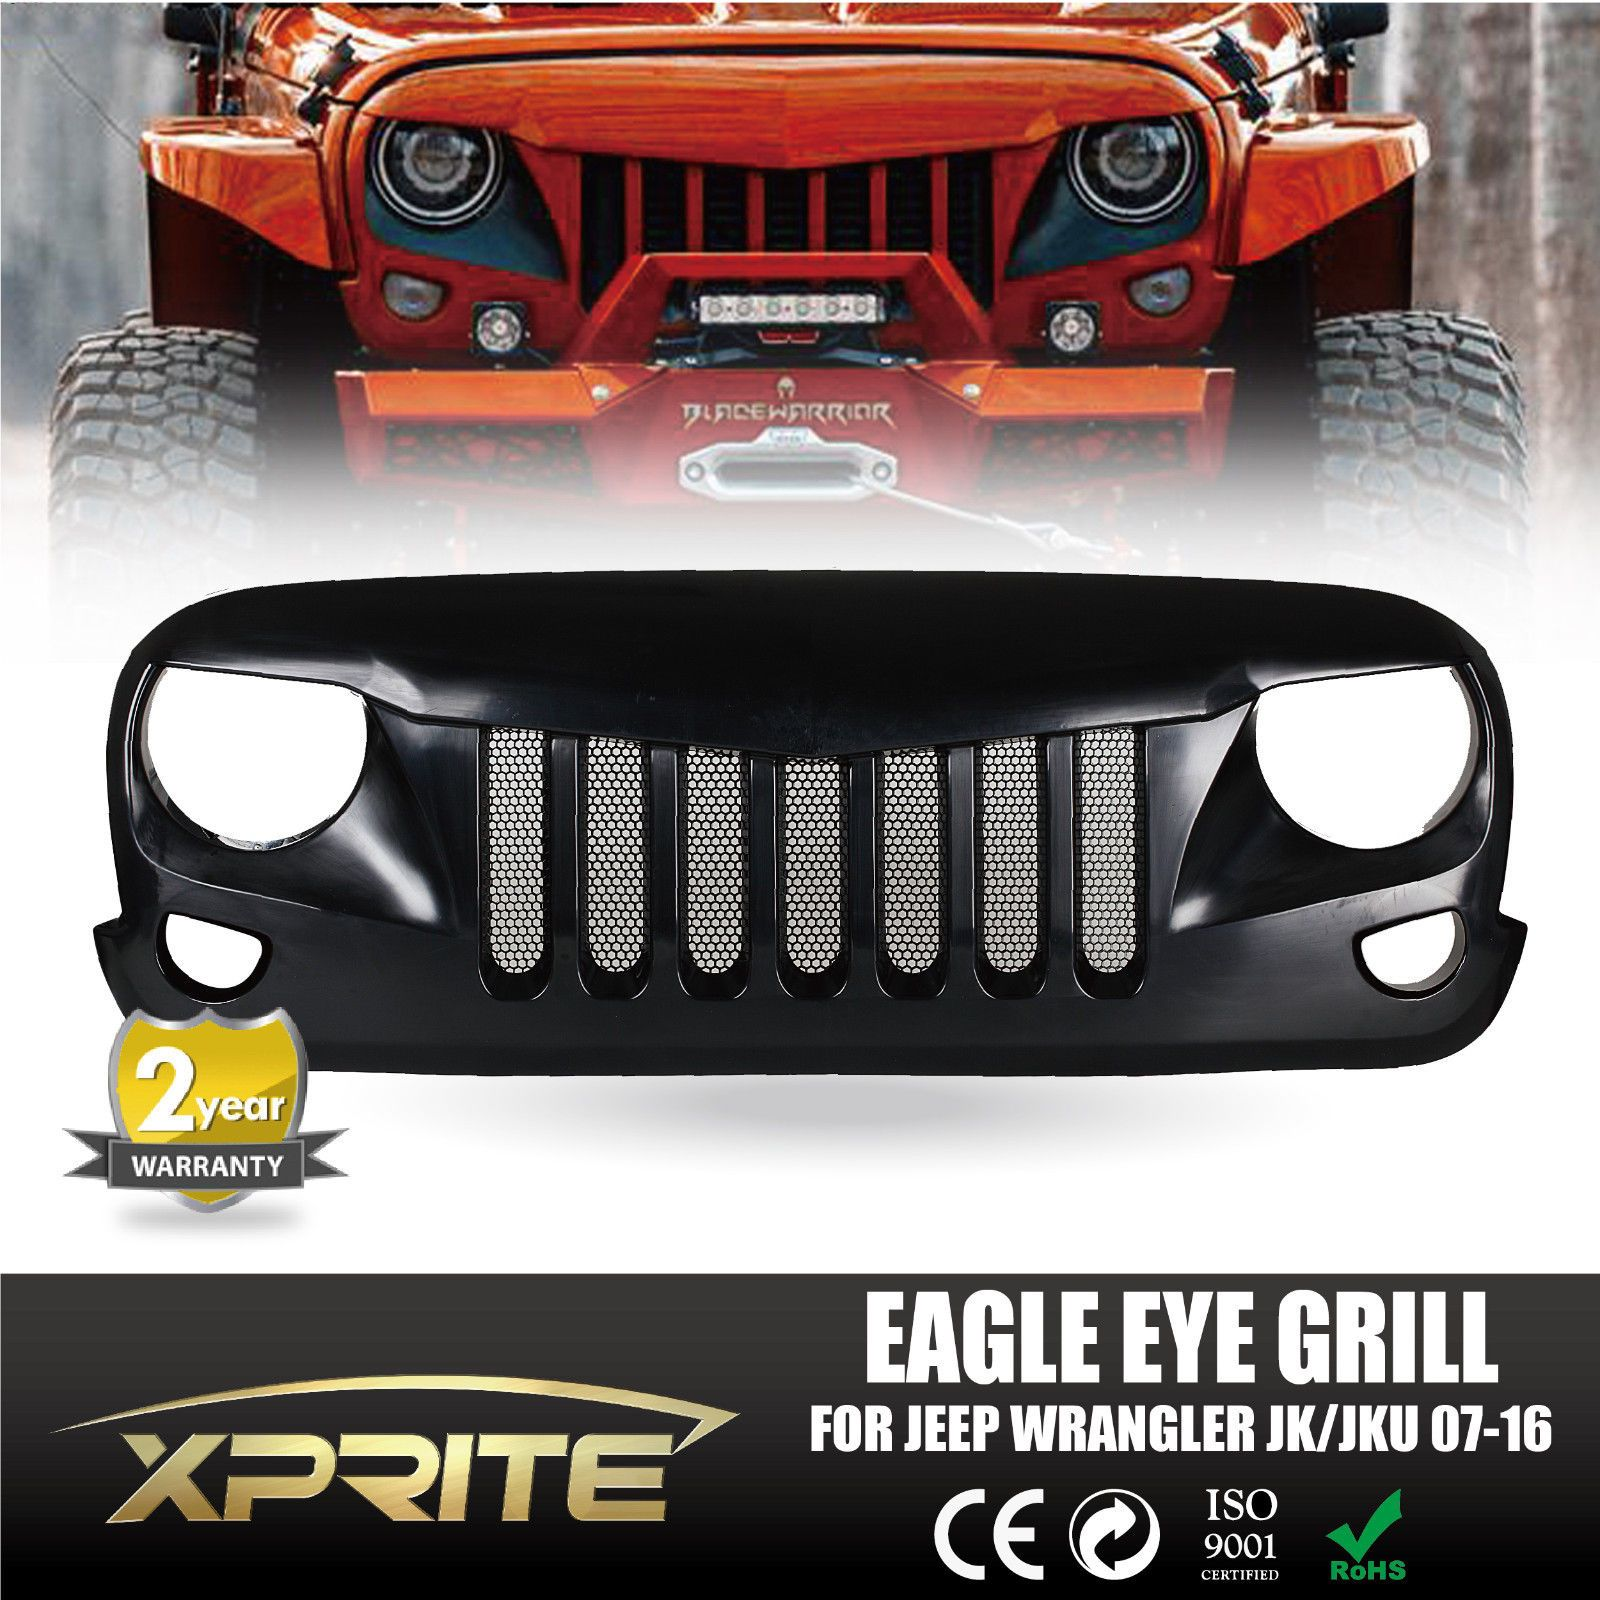 Front Black Eagle Eye Grill Grille With Mesh For 2007 2018 Jeep Wrangler Jk Jeep Wrangler Jeep Wrangler Jk Jeep Wrangler Grill